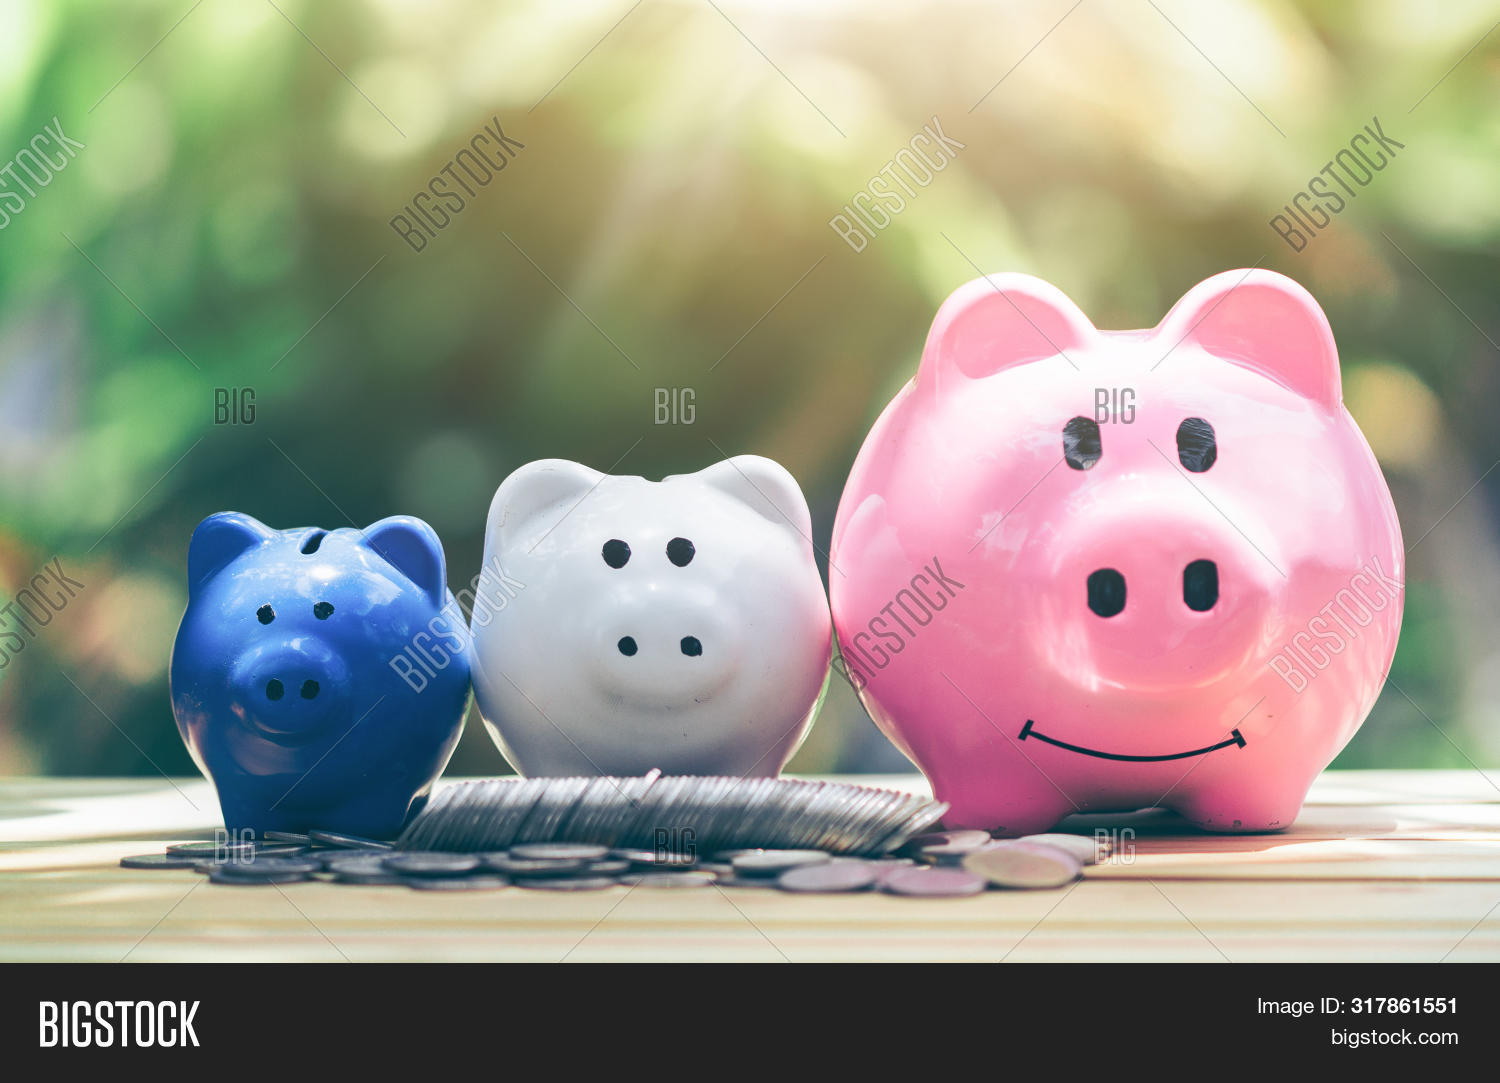 account,background,bank,banking,budget,business,businessman,cash,coin,concept,currency,deal,deposit,dollar,earn,economy,finance,financial,fund,future,growing,growth,happy,income,invest,investing,investment,isolated,little,money,mortgage,pay,payment,pig,piggy,plan,property,putting,retirement,rich,salary,save,savings,security,stack,success,symbol,three,wealth,white